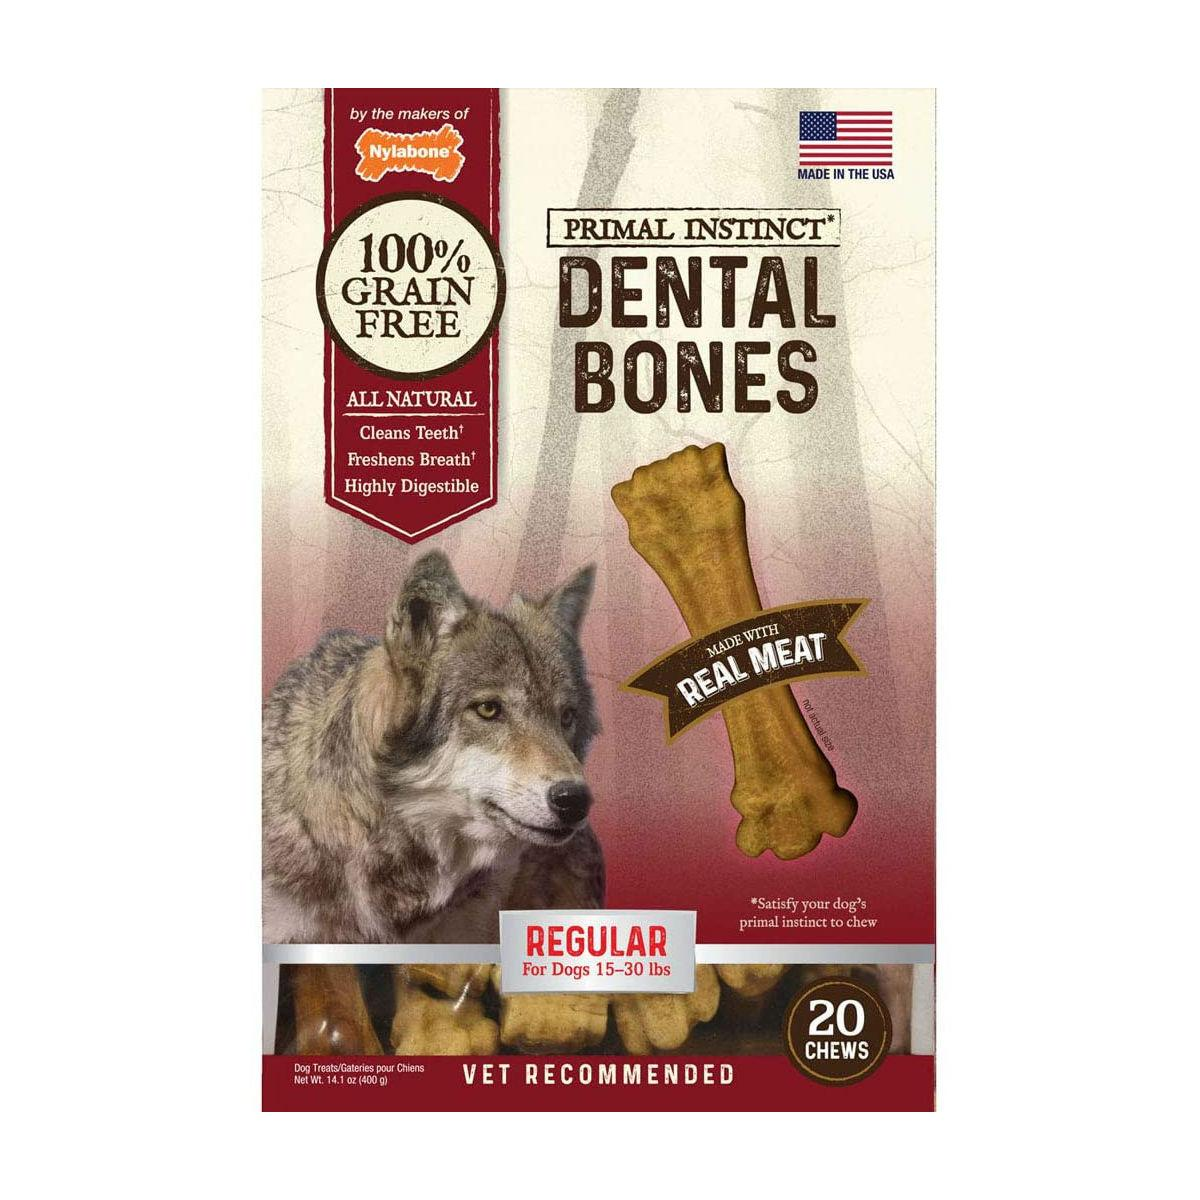 Nylabone Primal Instinct Real Meat Dental Bone Dog Treats - Regular